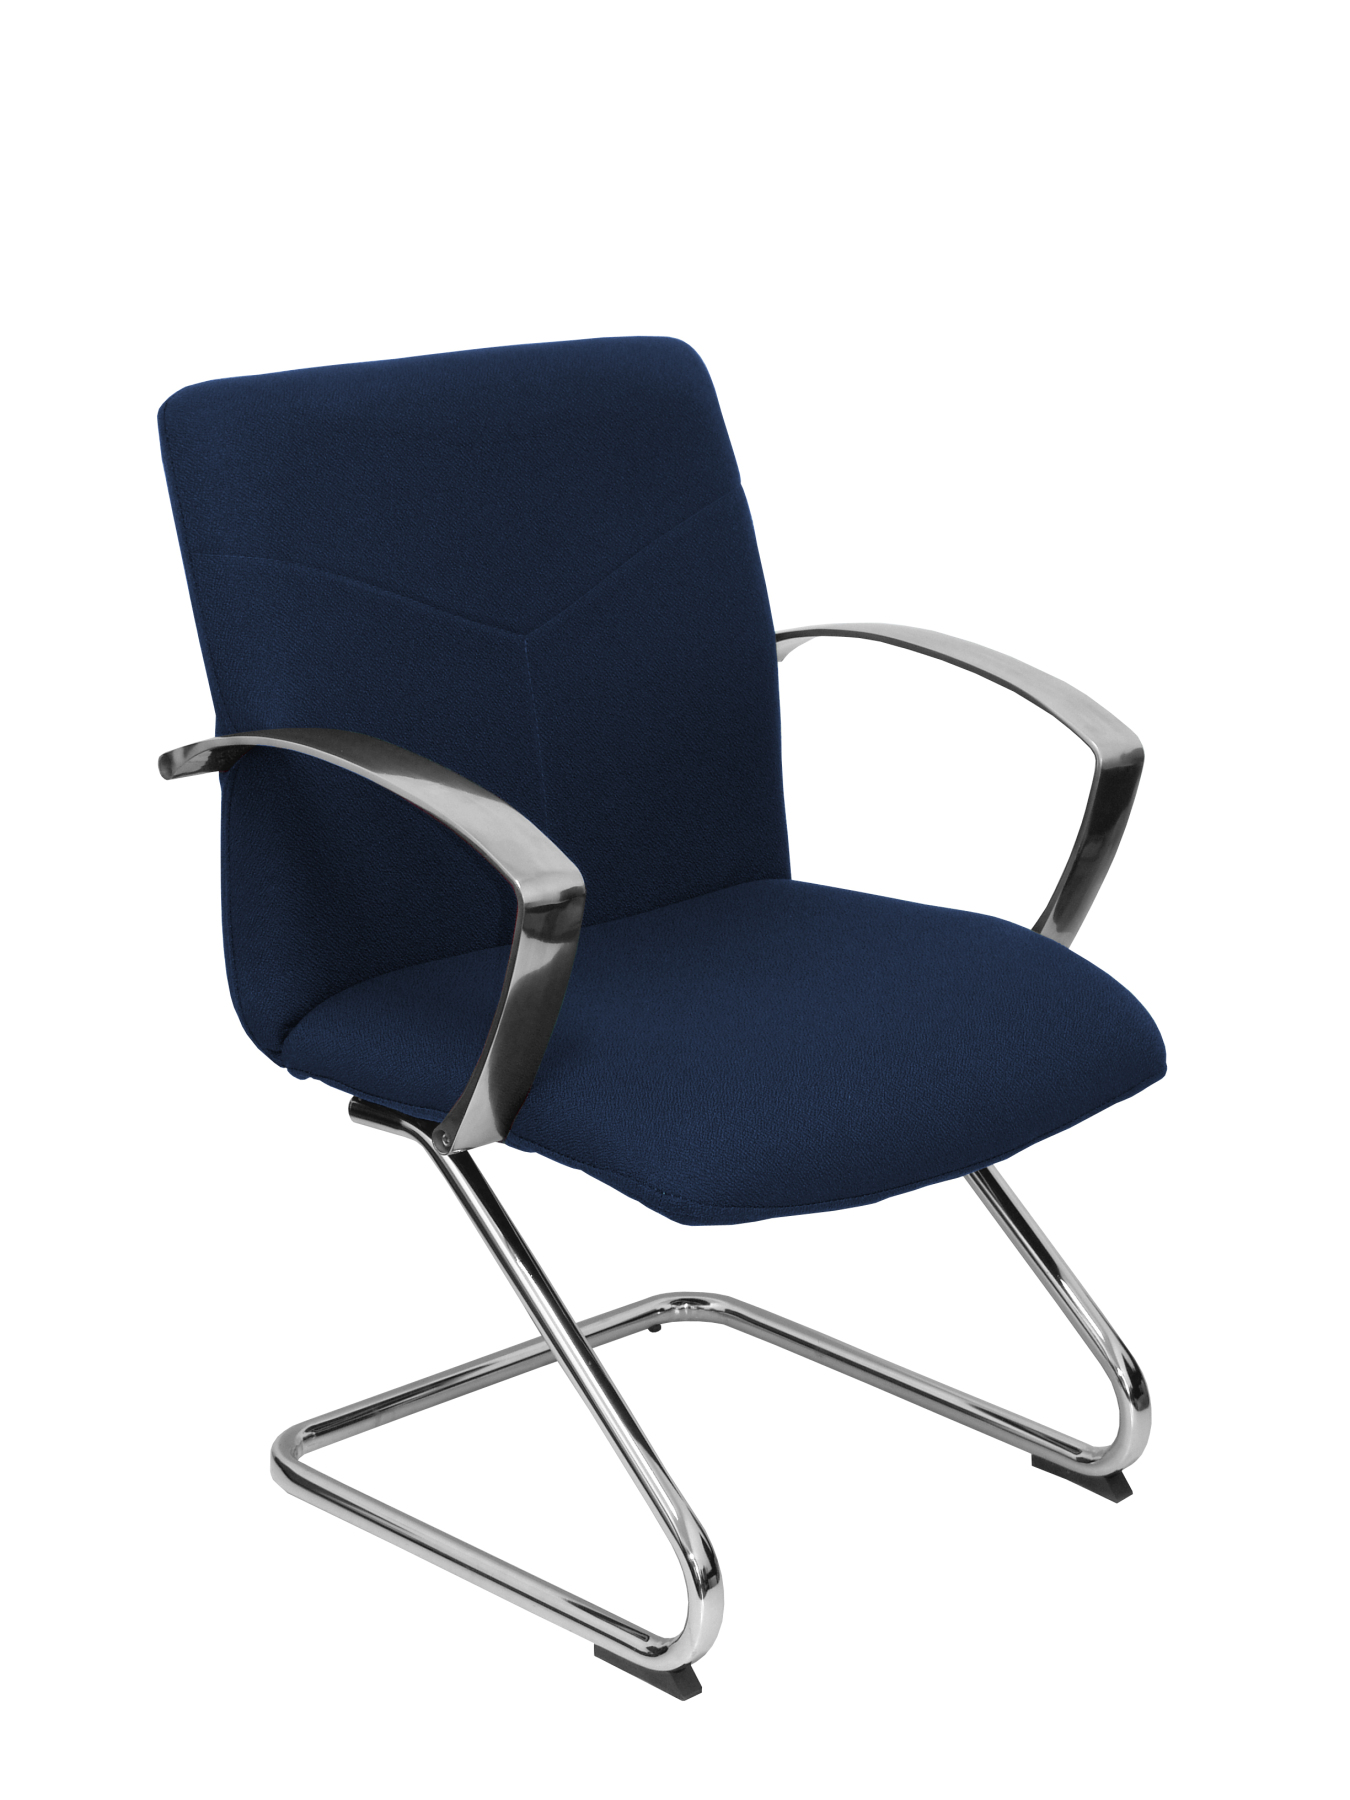 Armchair Reception Ergonomic Fixed Arms And Skate Chrome Seat And Back Upholstered In Fabric BALI Color